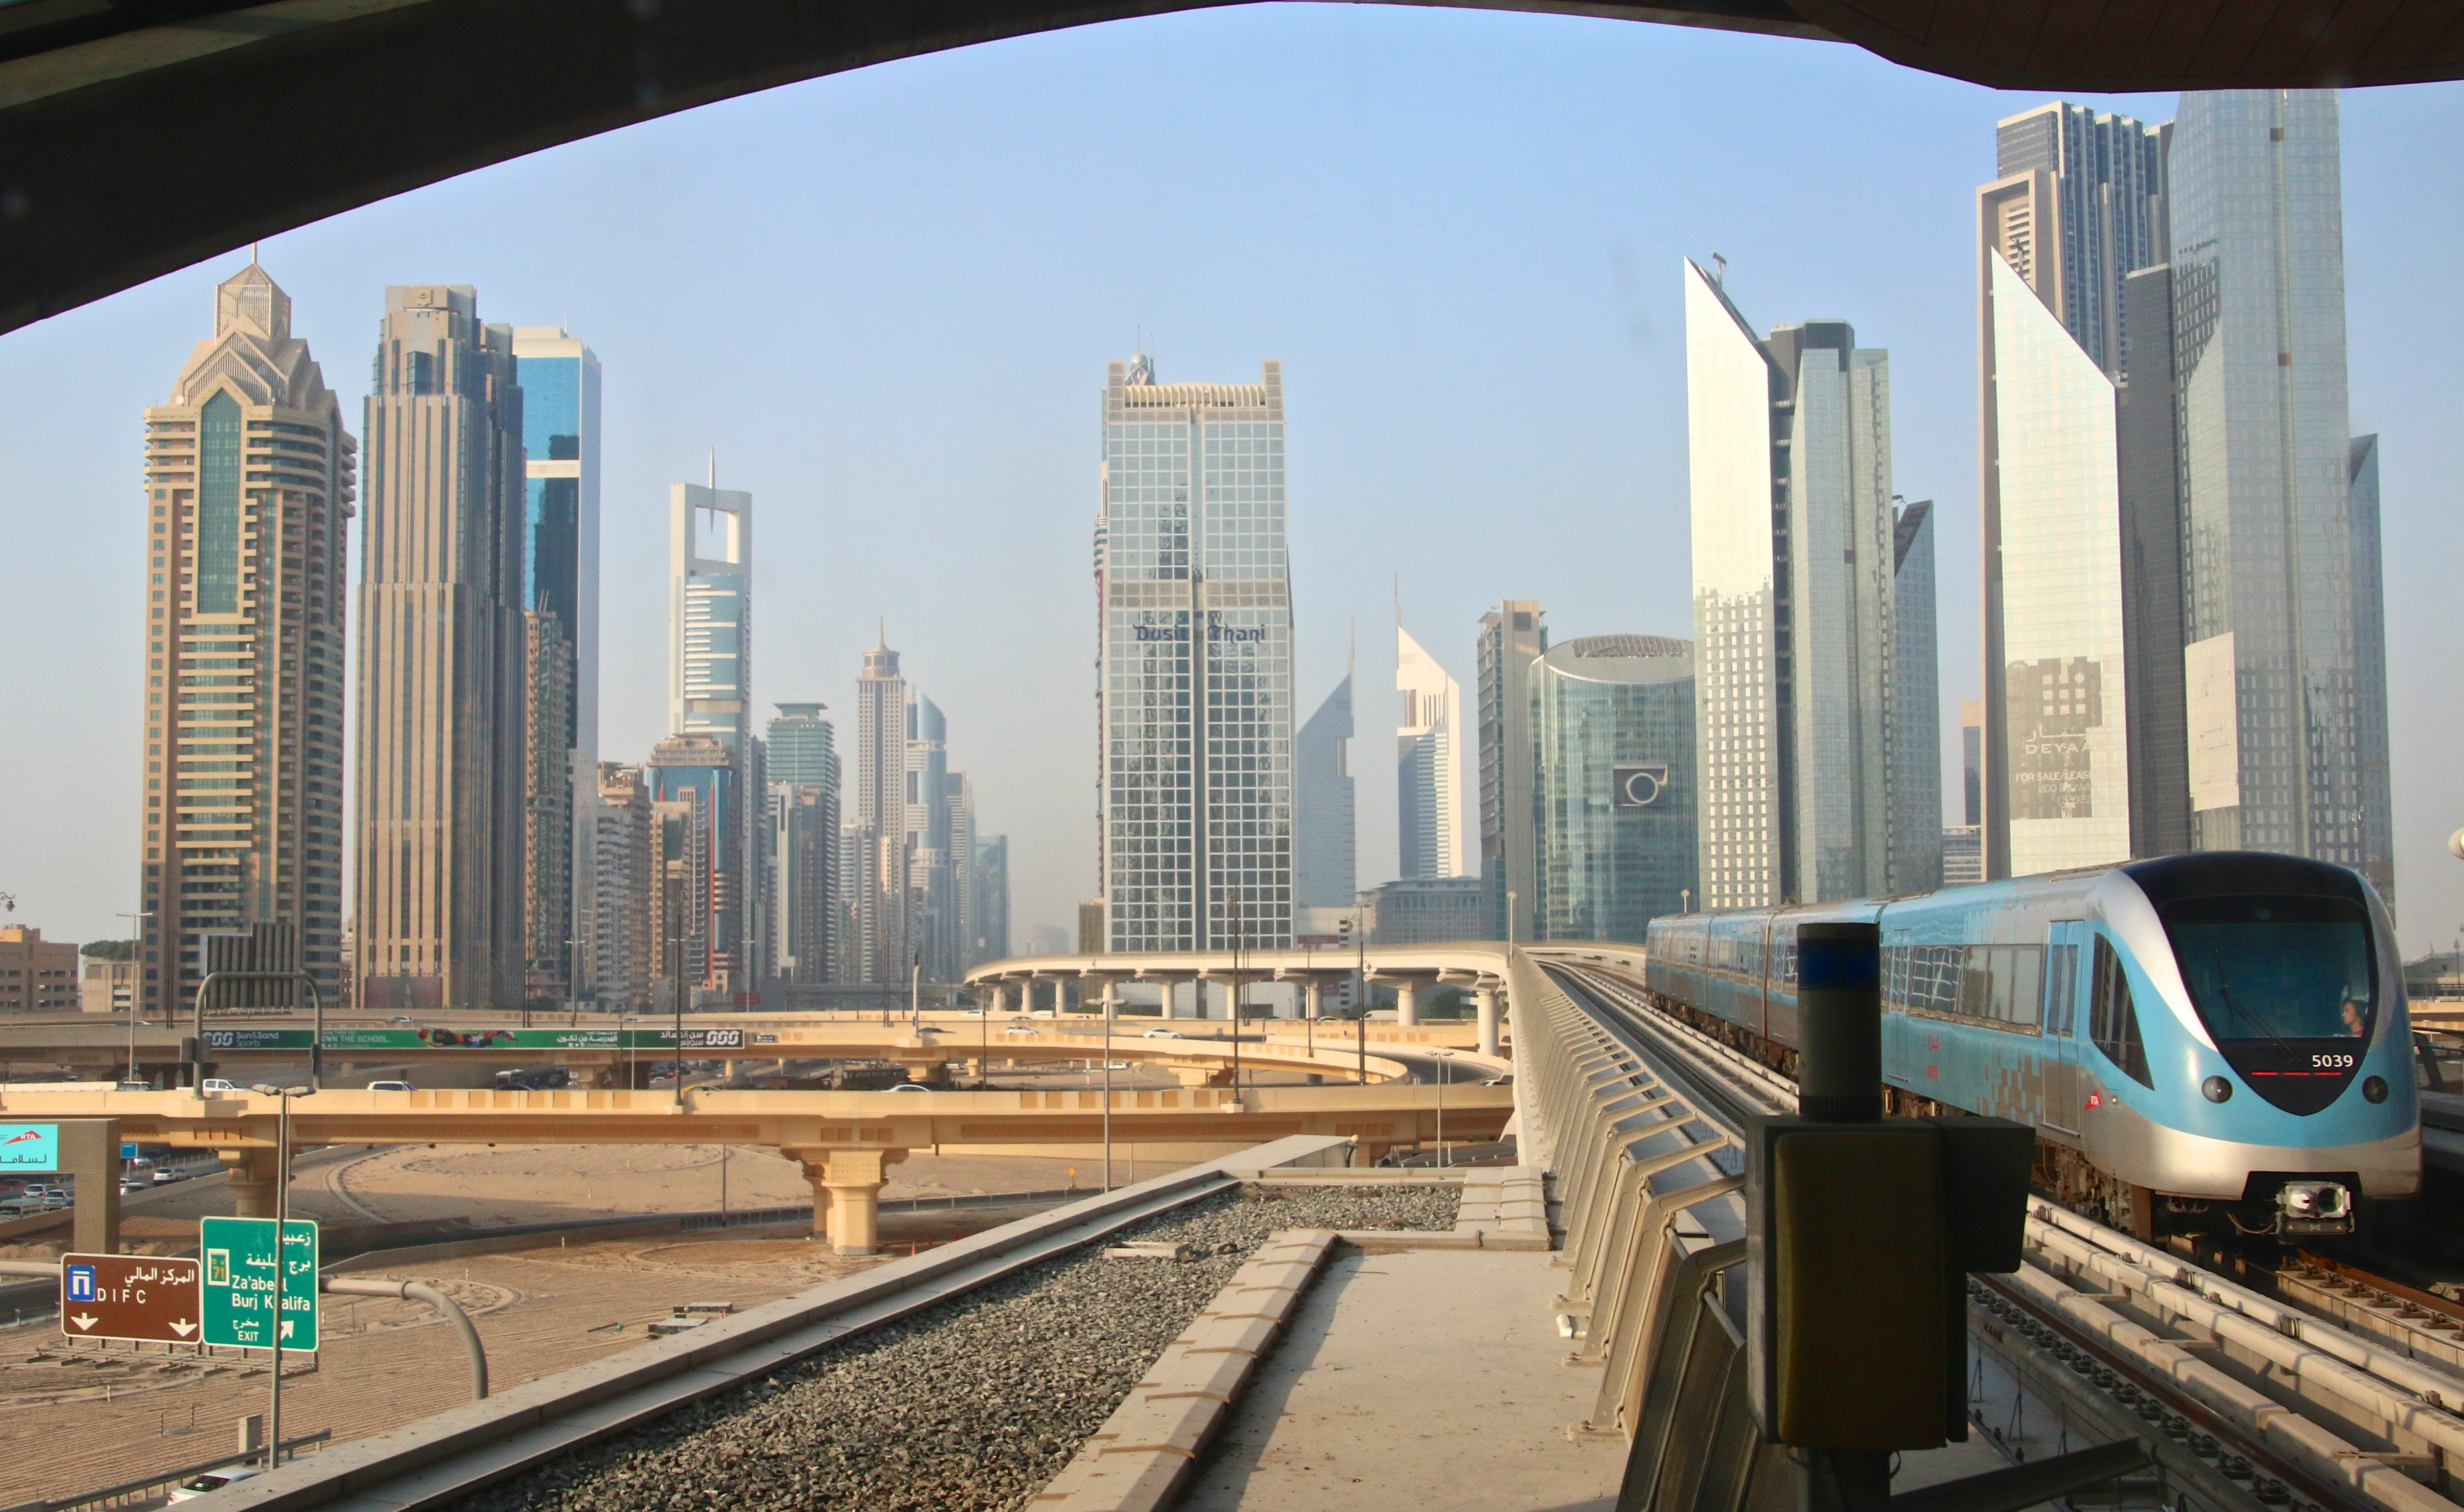 Metro – Dubai with train